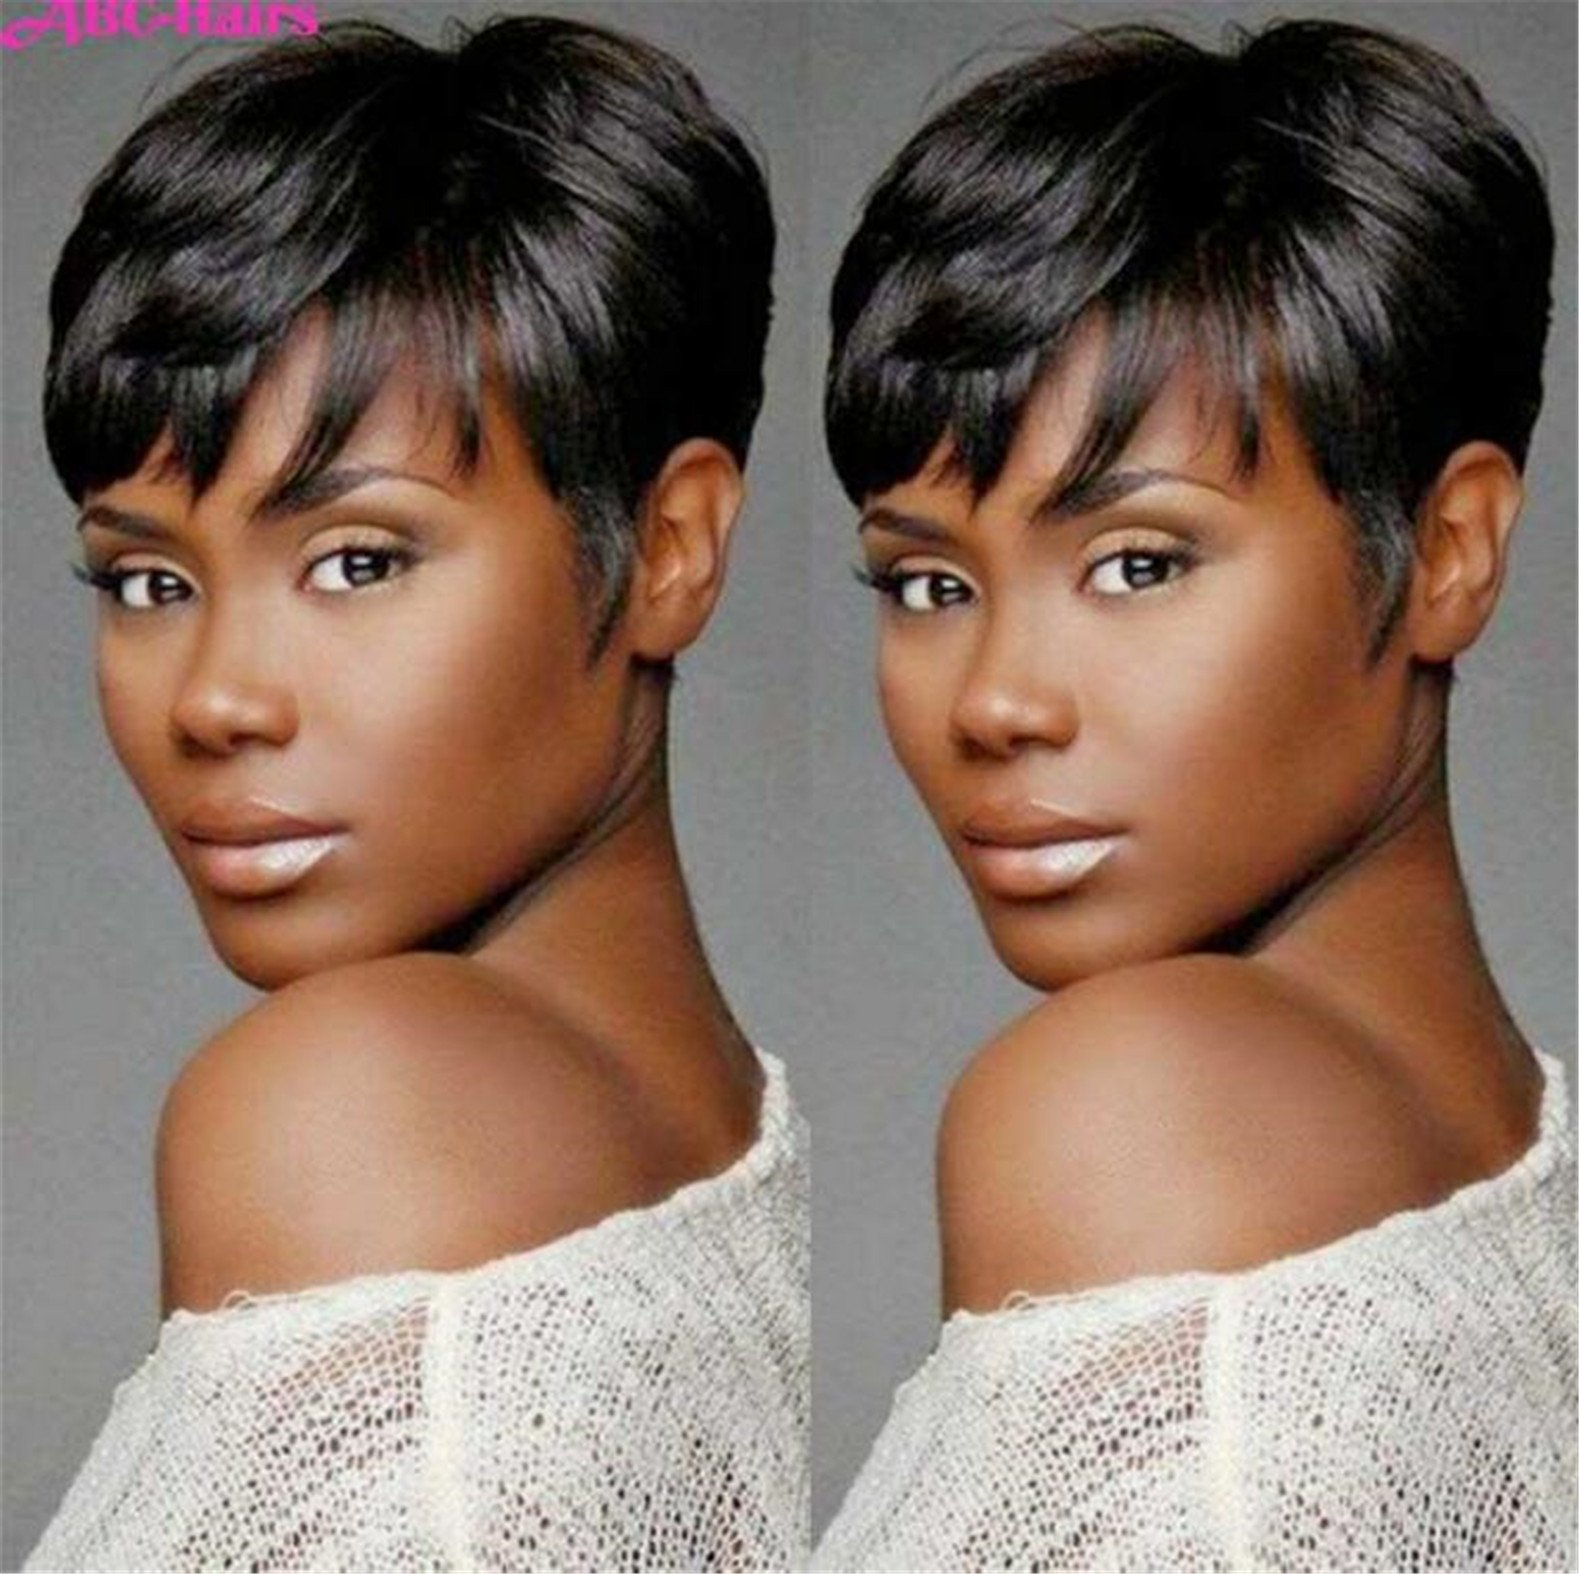 Amazon Cheap Hair Wig Hot Sale Short Pixie Cut Wigs Short Wigs